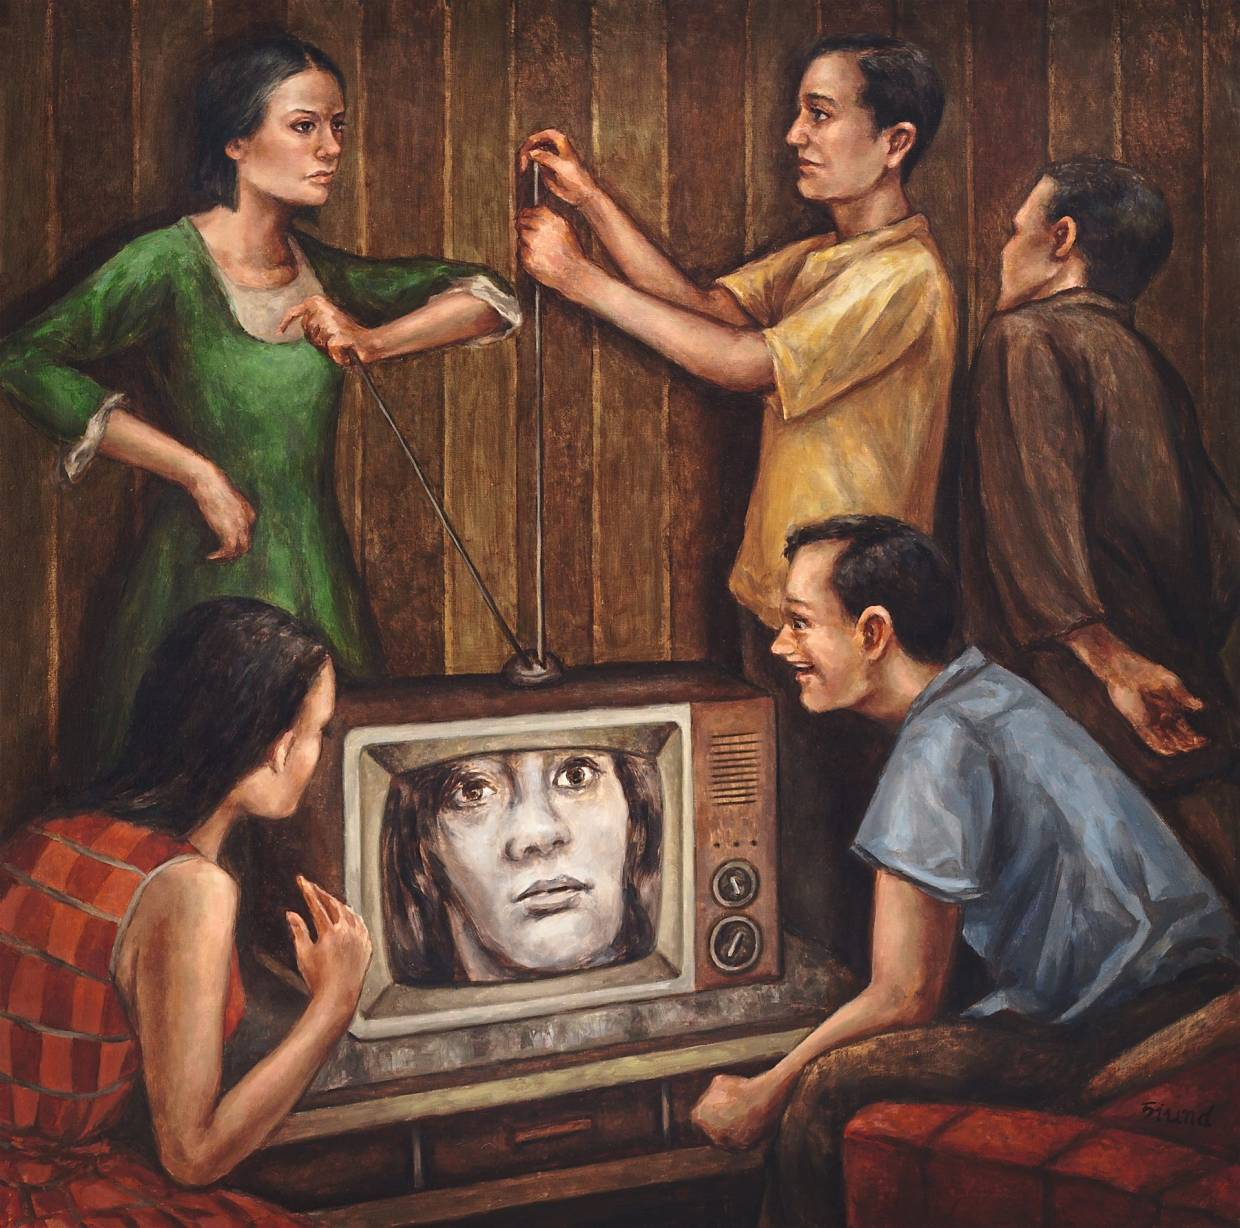 Tan's 'Signal Catcher' (oil on canvas, 2019) revisits the communal experience of watching television and dealing with lost transmissions. Photo: Siund Tan